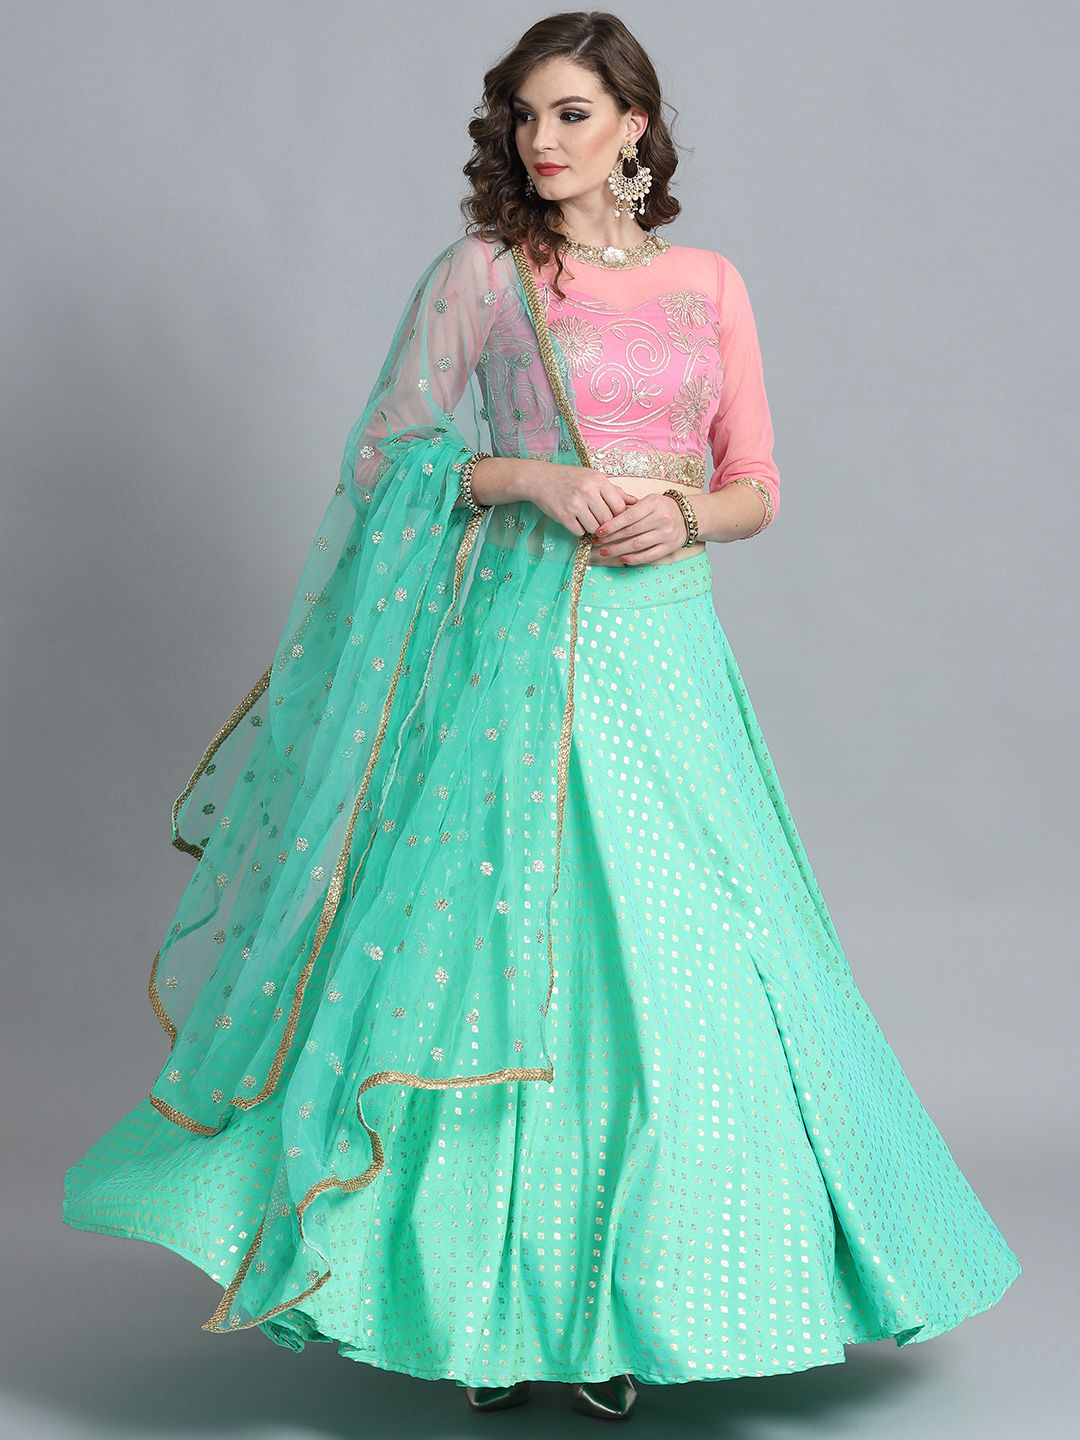 02d71be4c73c78 Bollywood Vogue Green & Pink Gotta Patti Made To Measure Lehenga Choli # Lehenga #Green #Pink #Wedding